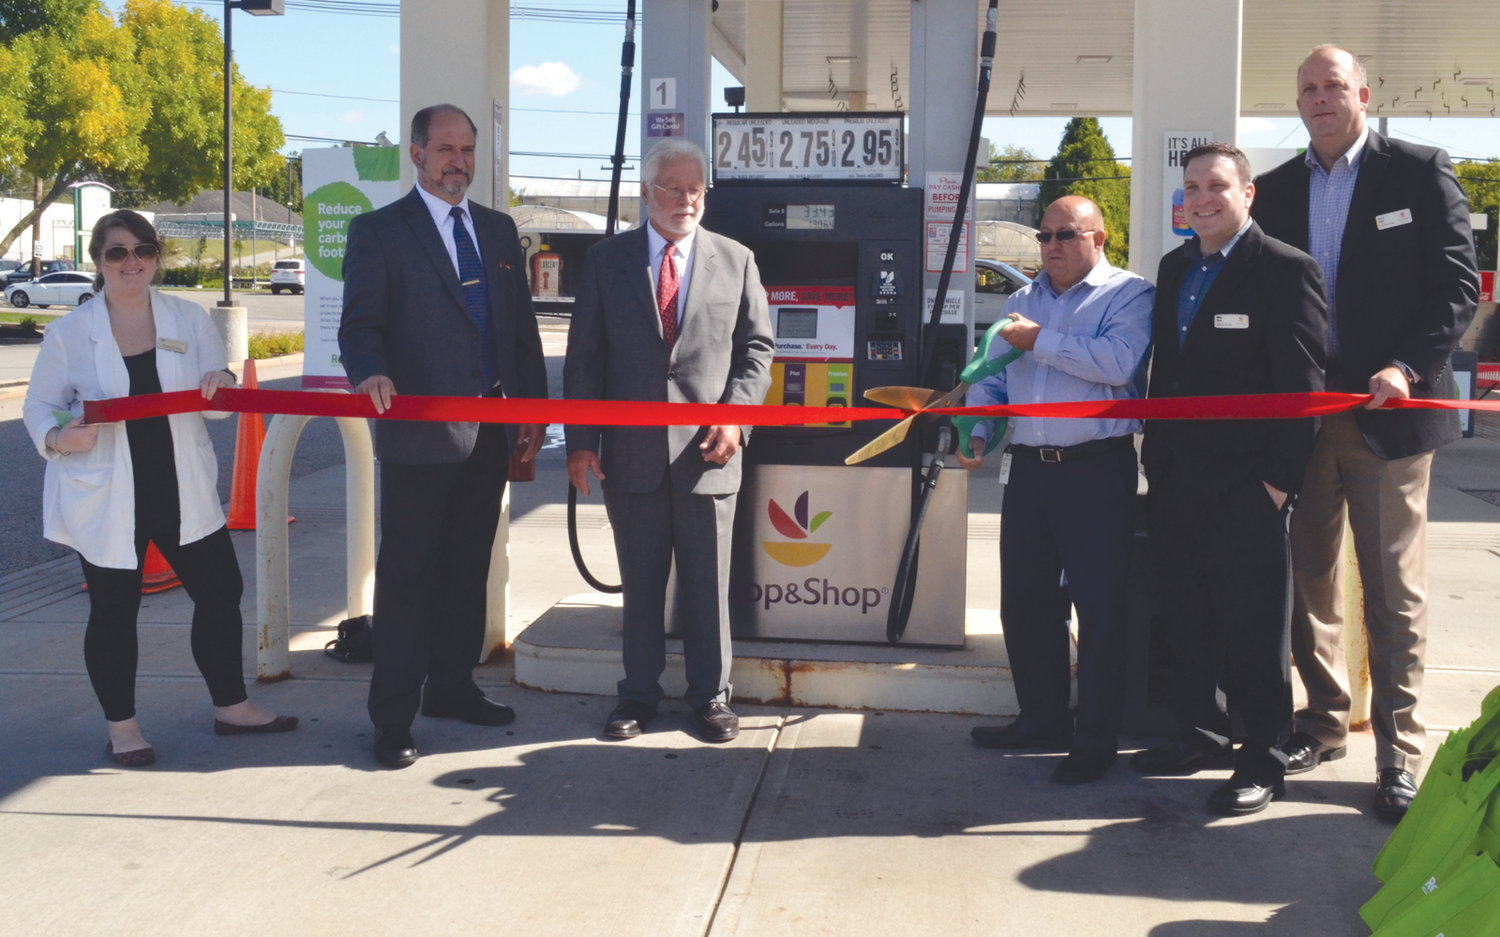 THE MARKET OF REDUCING CARBON: From left to right, GreenPrint strategic account manager Morgan Holmes, Johnston District 5 Town Councilman Robert Civetti, Northern Rhode Island Chamber of Commerce Vice President Paul Ouellette, Stop & Shop fuel specialist Ken Silvia, Johnston store manager Mike Clodi and district manager Scott Danis cut the ribbon Stop & Shop's Restore program during a ceremony Wednesday morning at the Stop & Shop at 11 Commerce Way in Johnston.